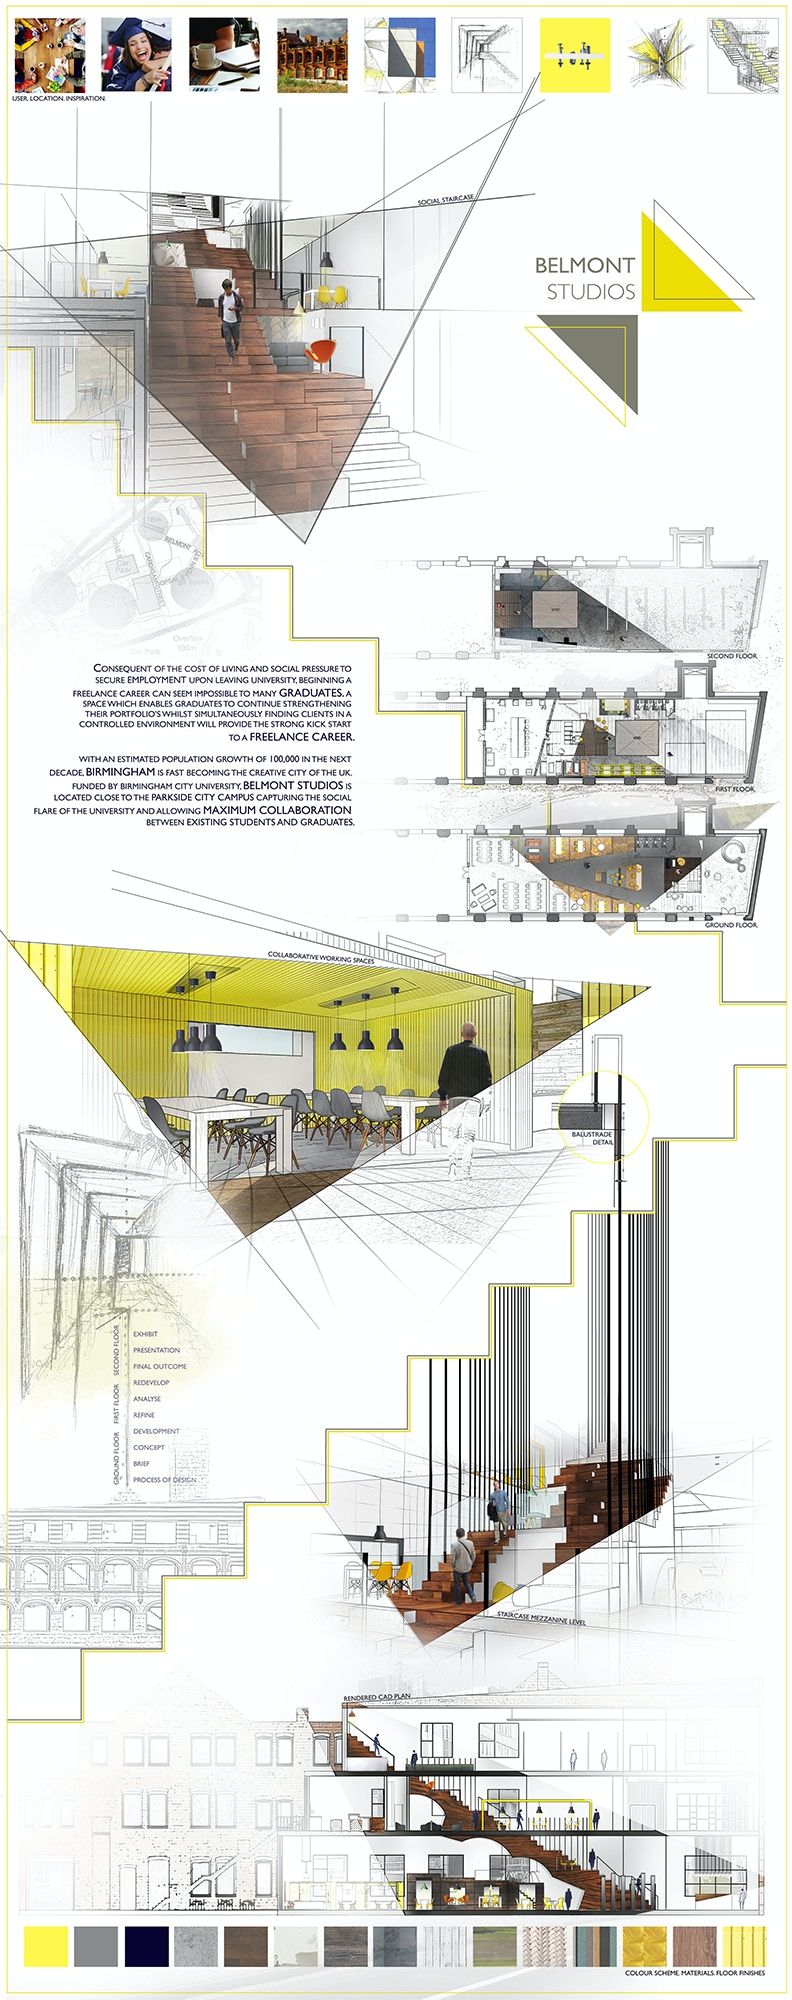 Sydney Davies interior architecture and design student work